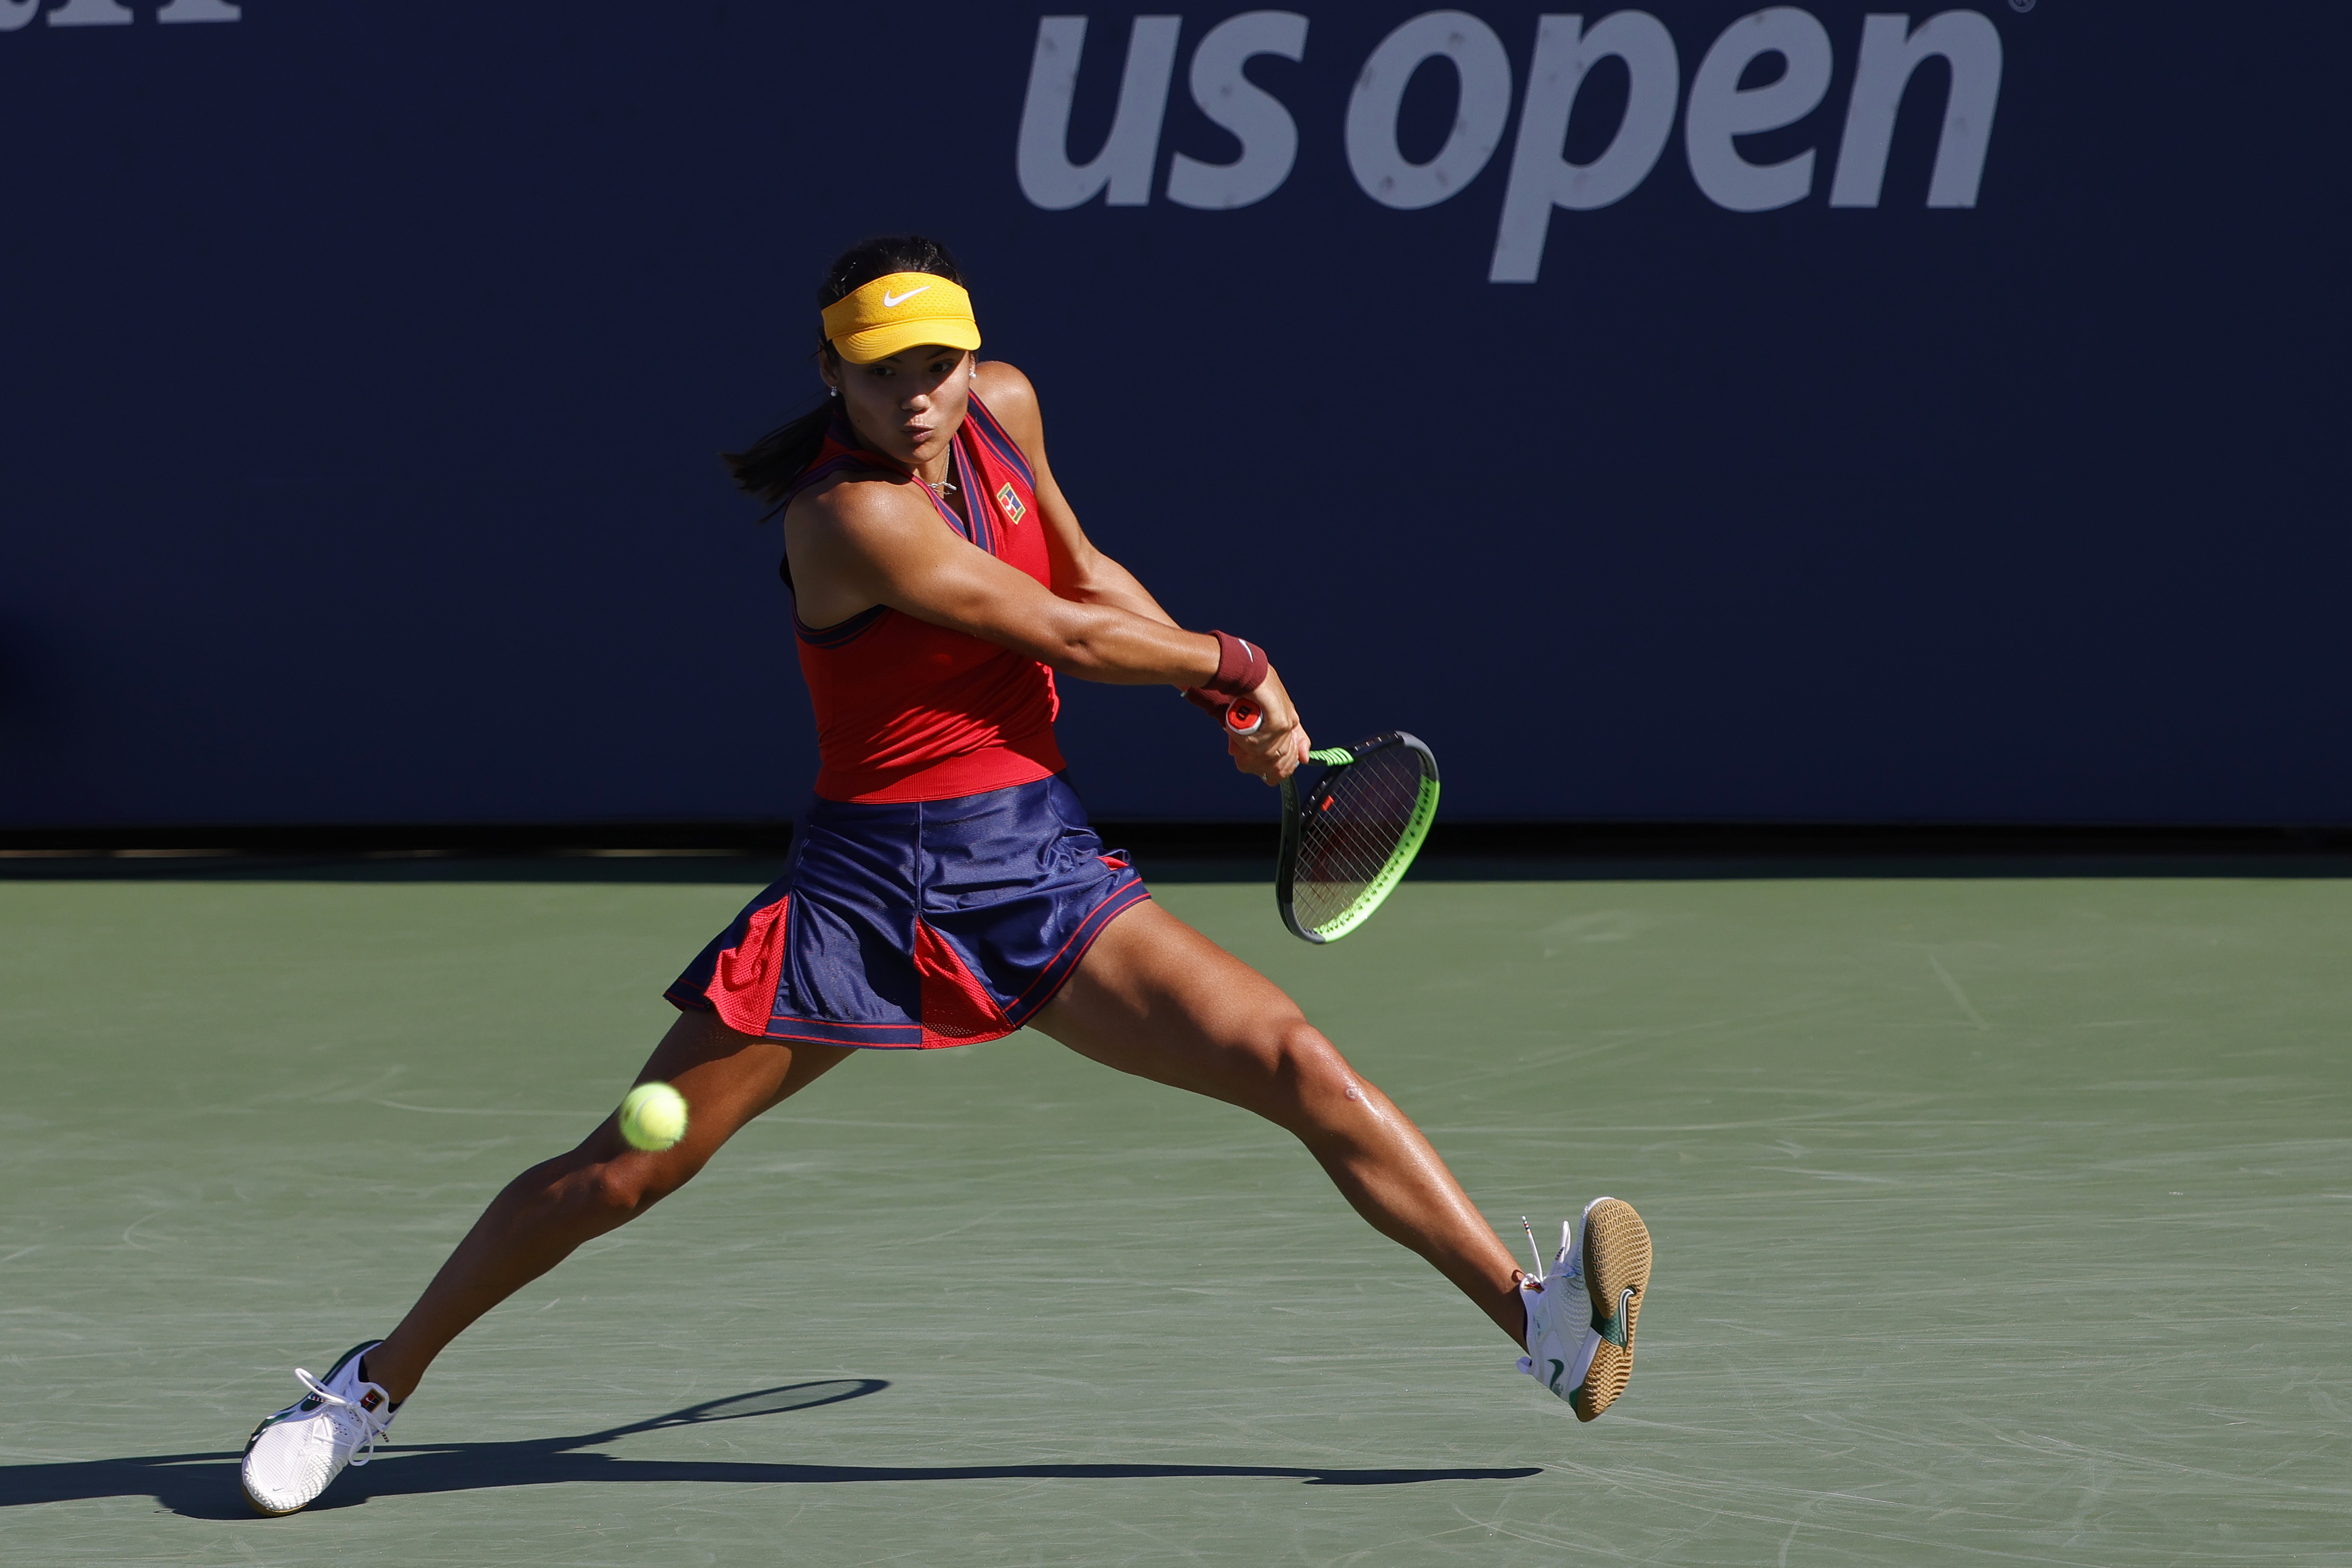 Sep 4, 2021; Flushing, NY, USA; Emma Raducanu of Great Britain hits a backhand against Sara Sorribes Tormo of Spain (not pictured) on day six of the 2021 U.S. Open tennis tournament at USTA Billie Jean King National Tennis Center. Mandatory Credit: Geoff Burke-USA TODAY Sports